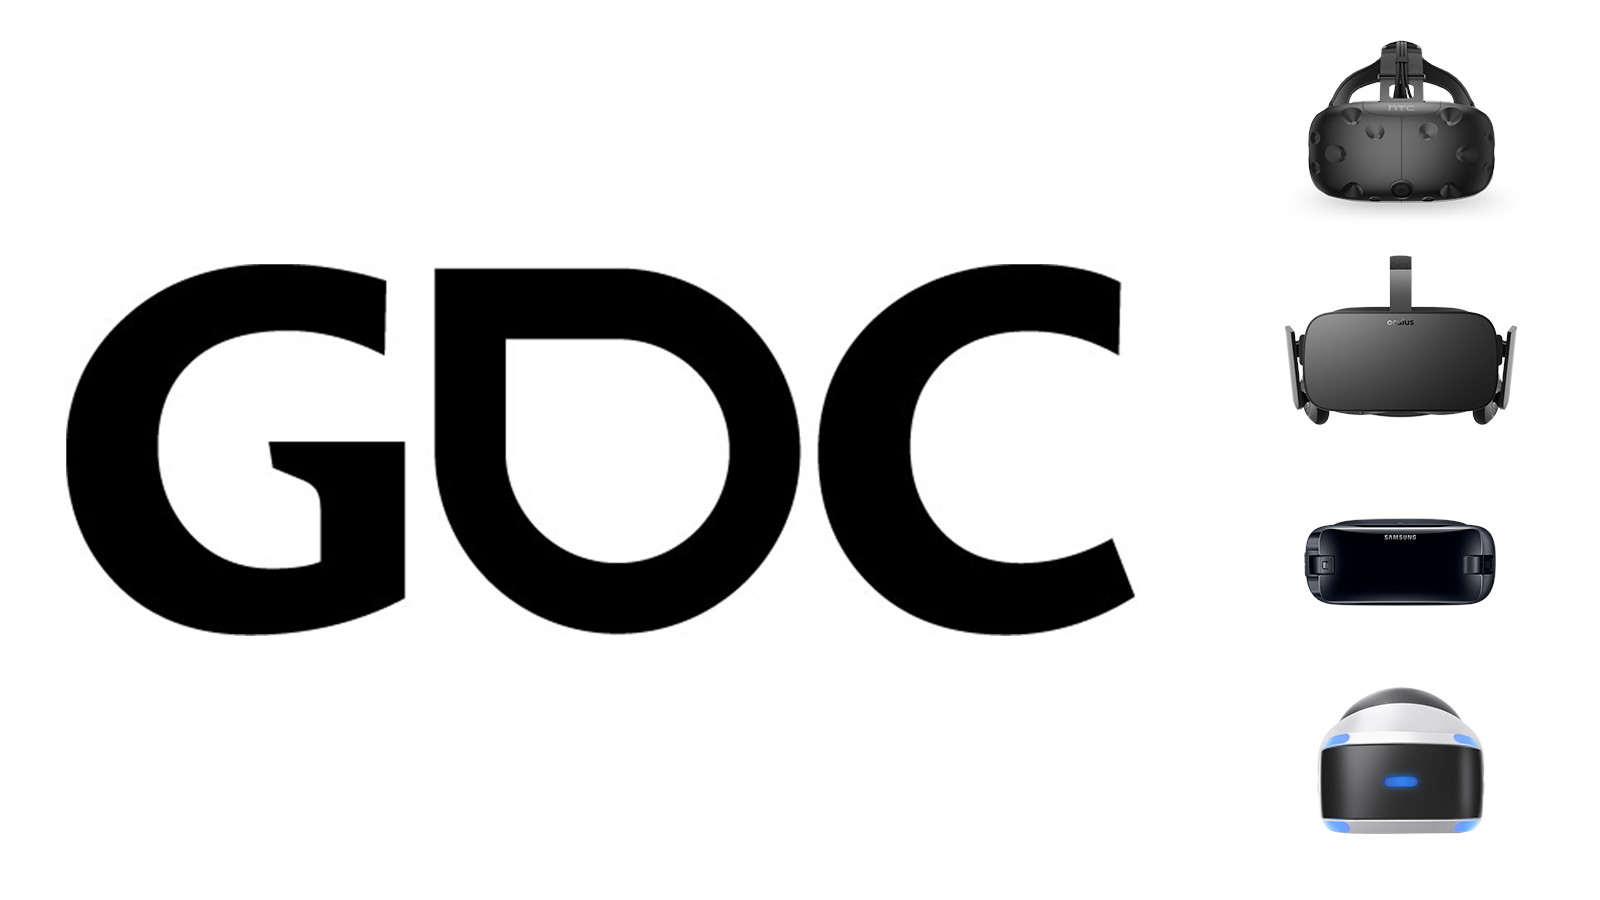 Loot boxes aren't going away, GDC survey says